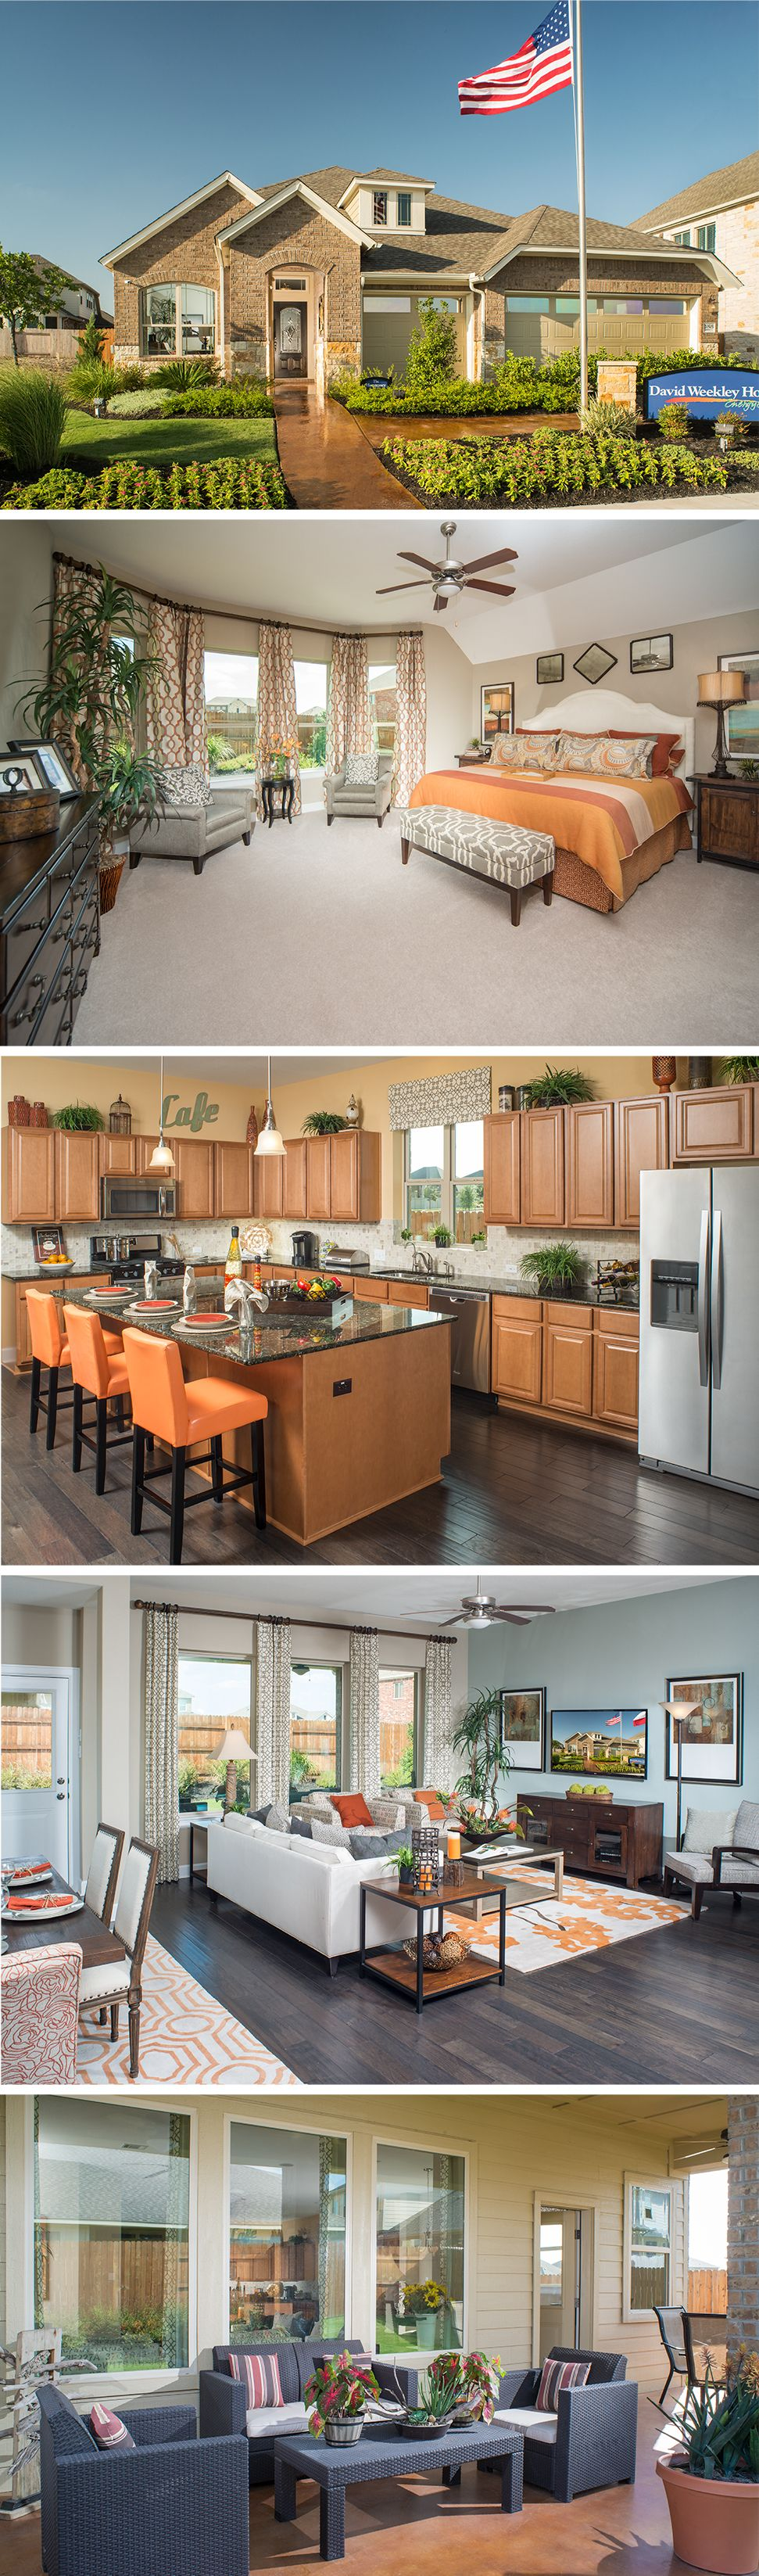 The Hennessey by David Weekley Homes in Blackhawk - Lifestyle features beautiful hardwood flooring, a large kitchen and dining area and a 2 car garage. Custom home options include an additional second story bedroom, a bay window in the owners retreat and an outdoor living space.